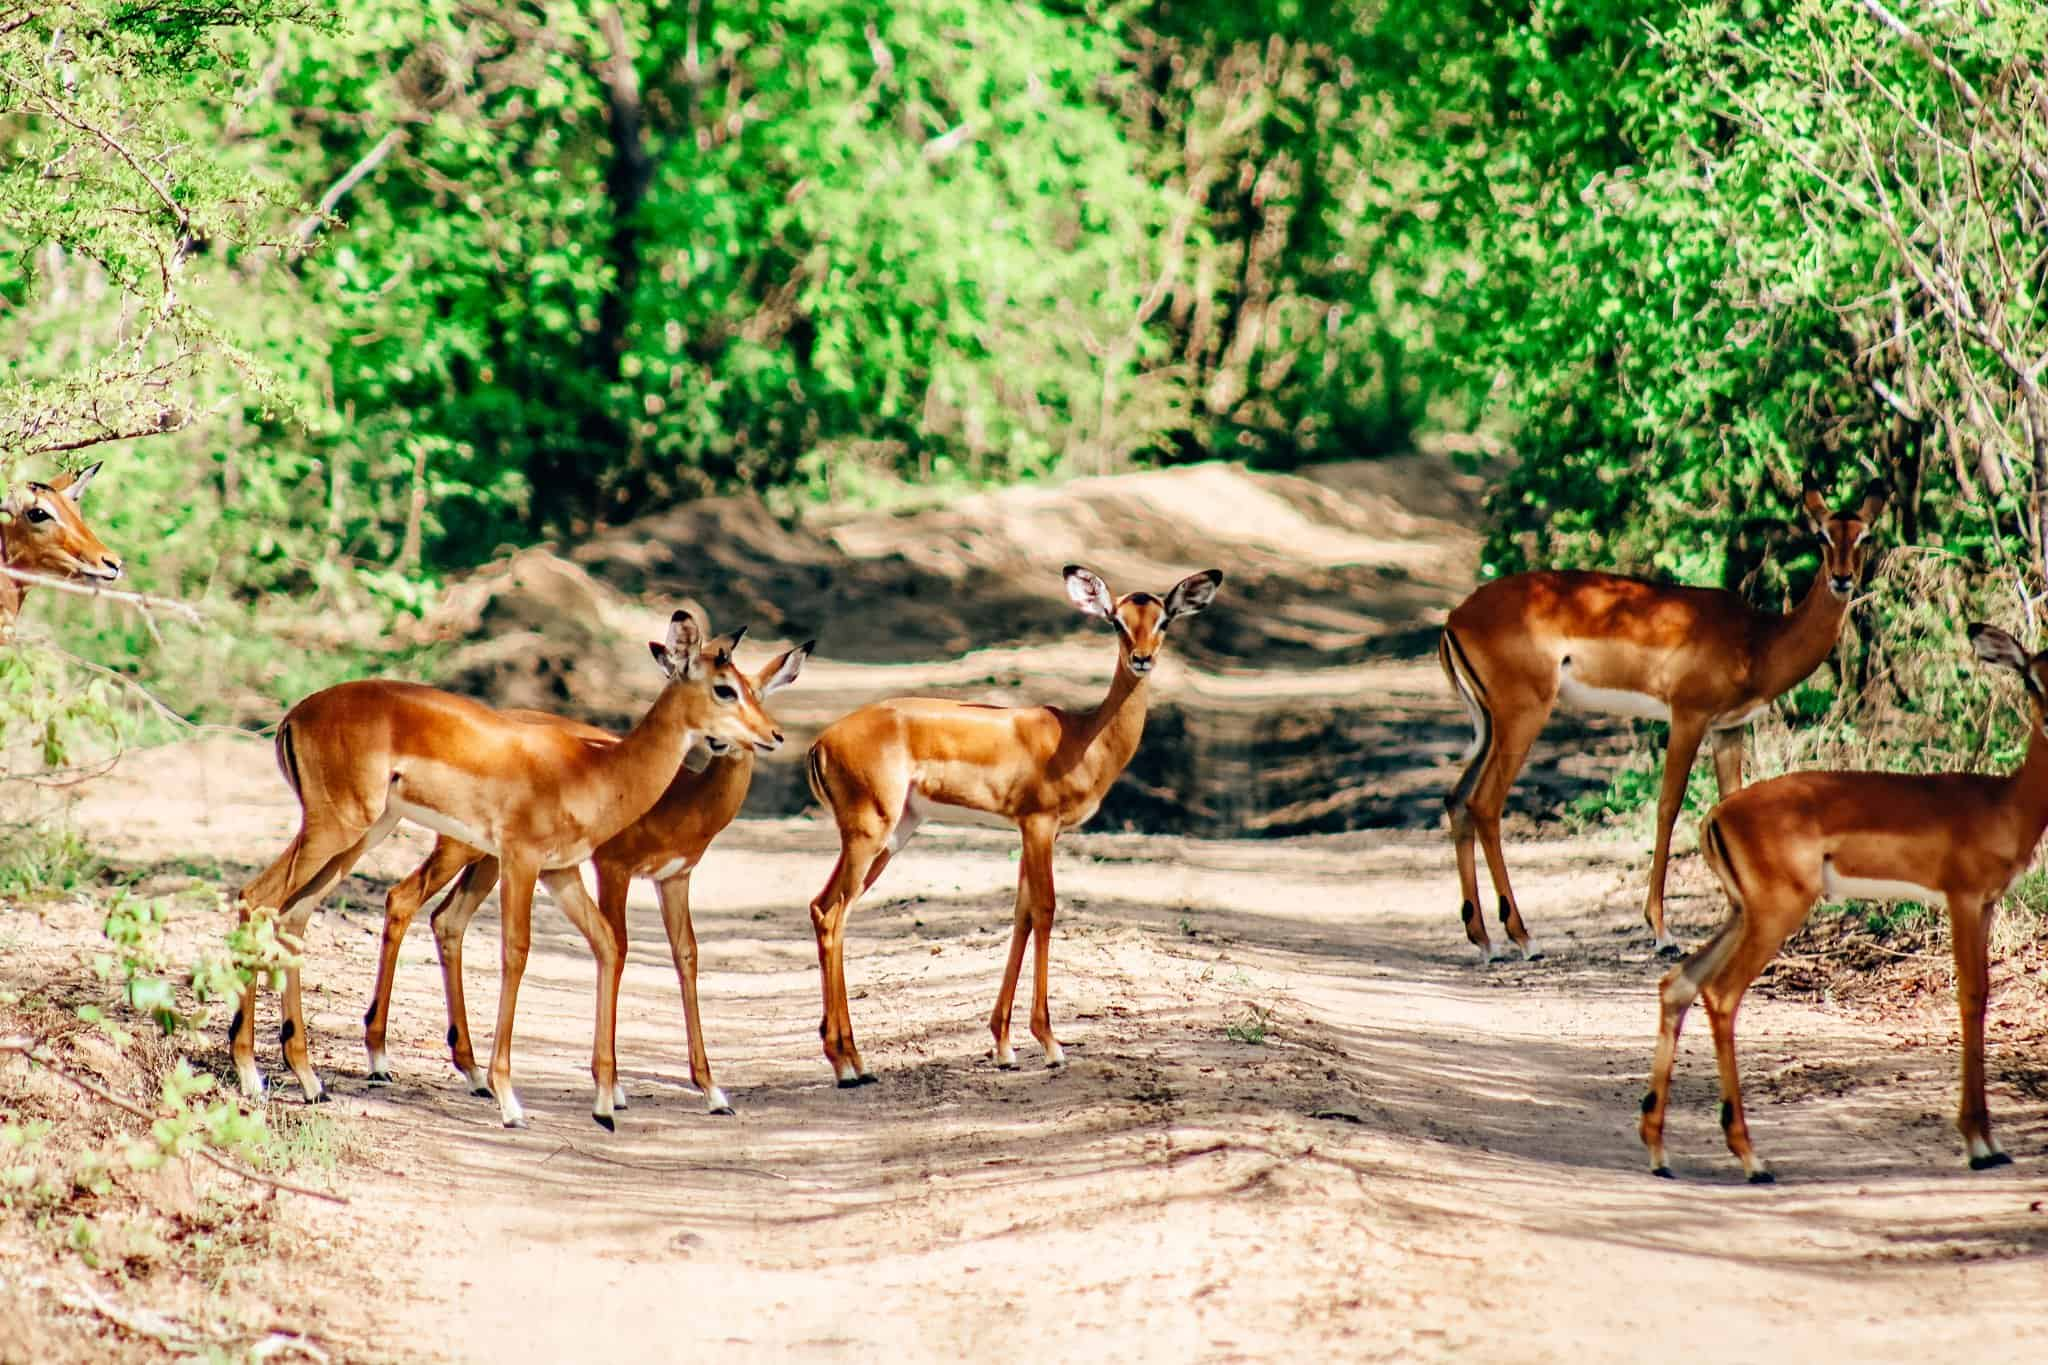 Herd of Impalas on African Safari Drive in the Selous Game Reserve